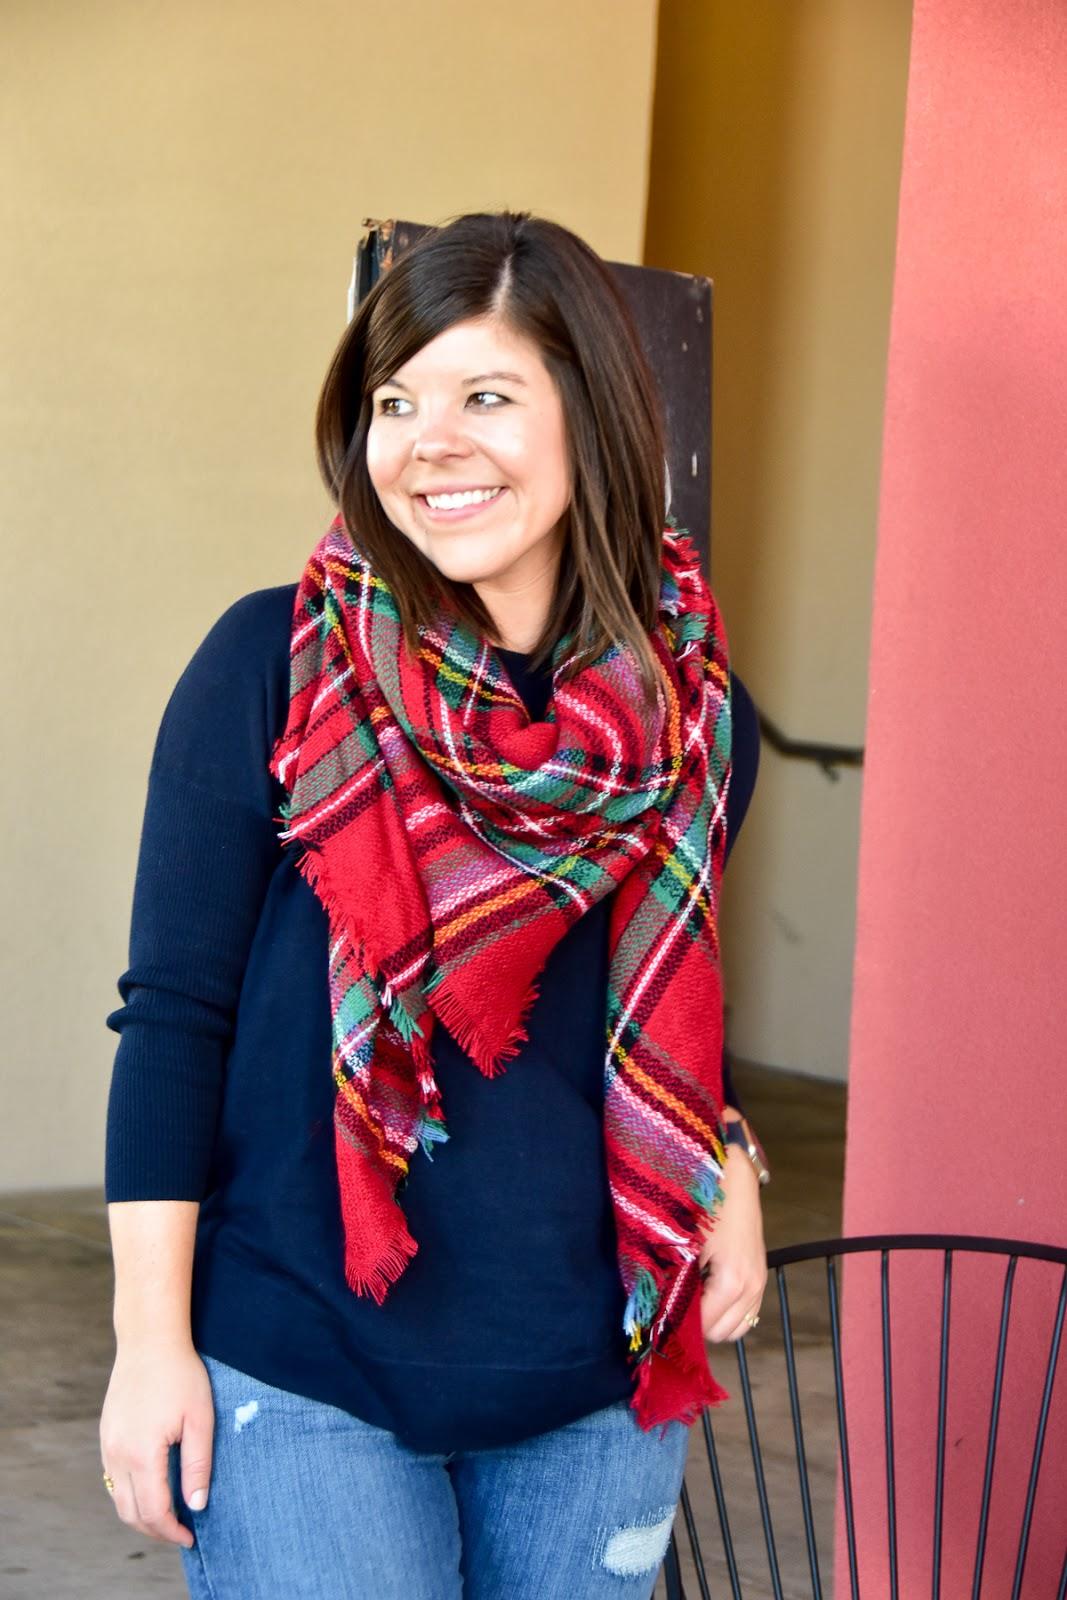 Time to Break Out the Blanket Scarves!